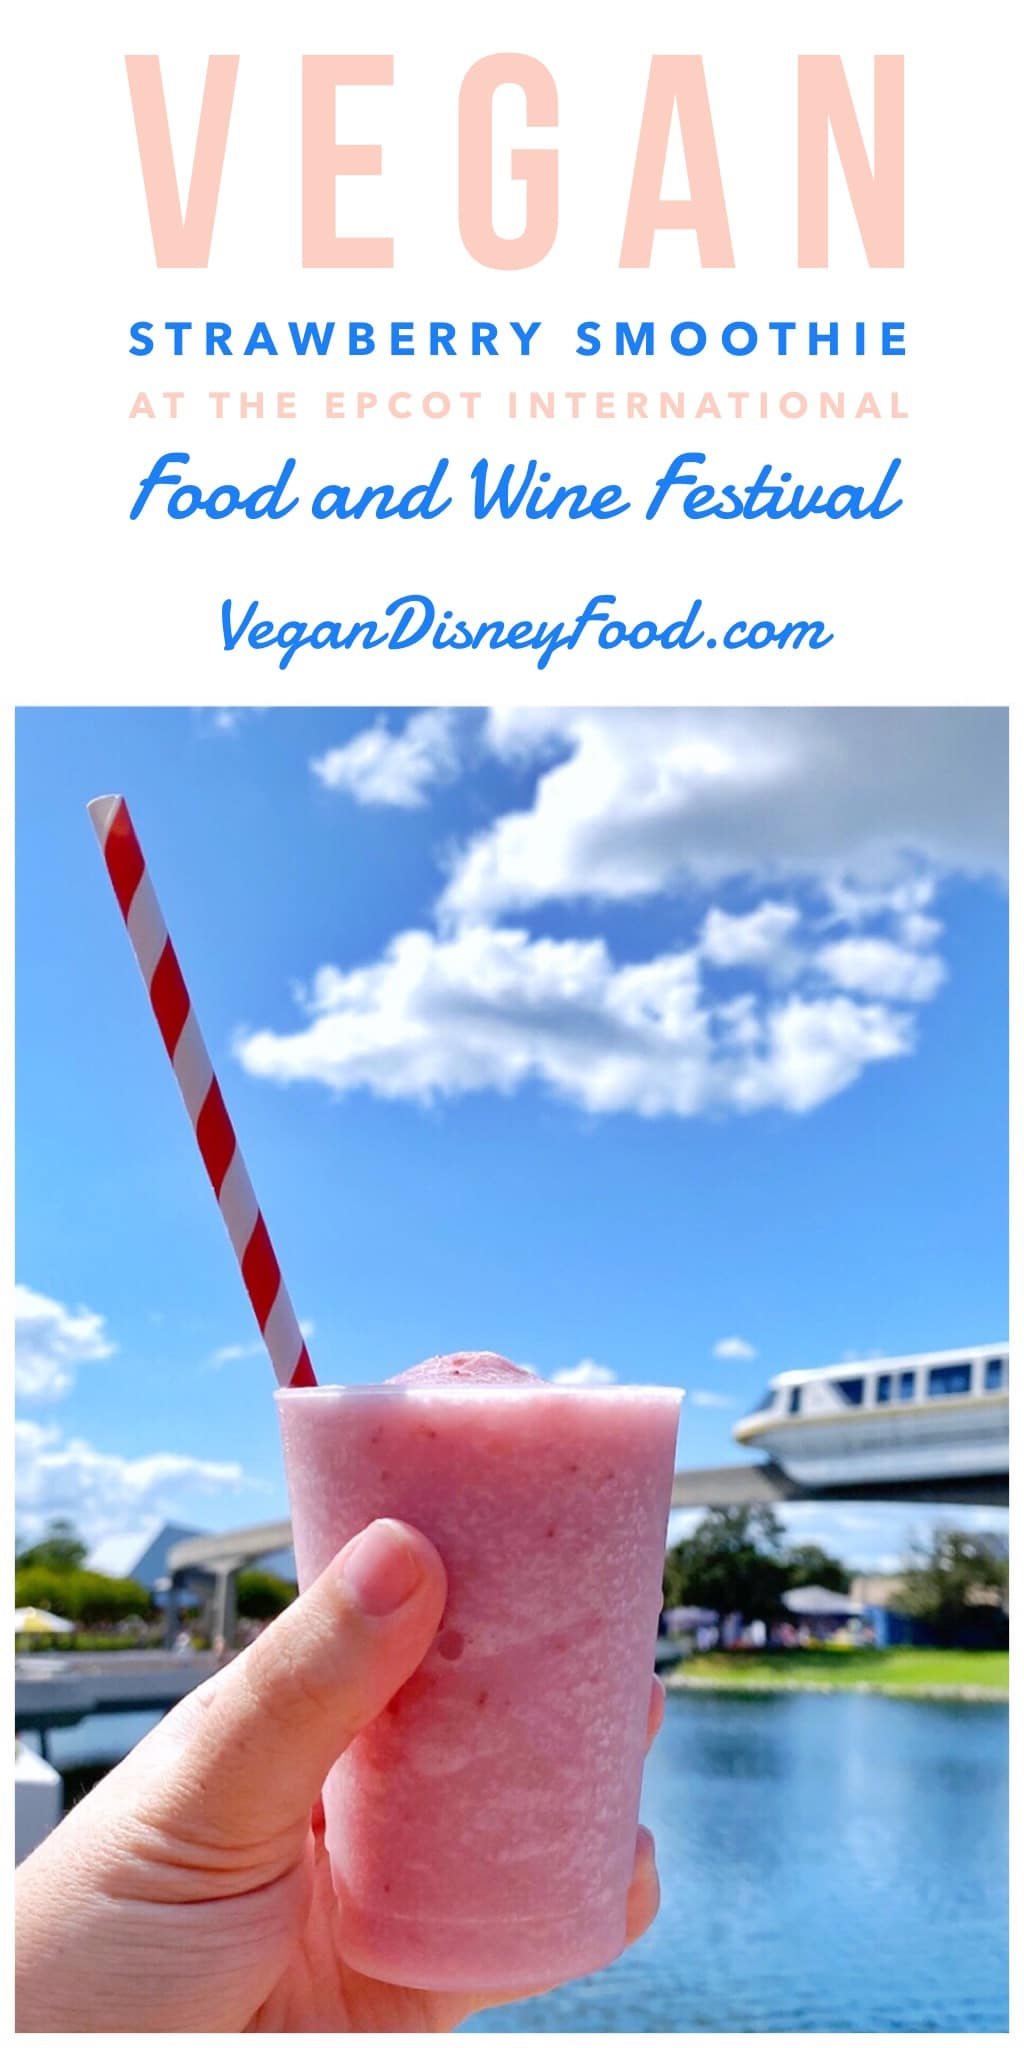 Vegan Strawberry Smoothie at the Epcot International Food and Wine Festival Donut Box at Walt Disney World